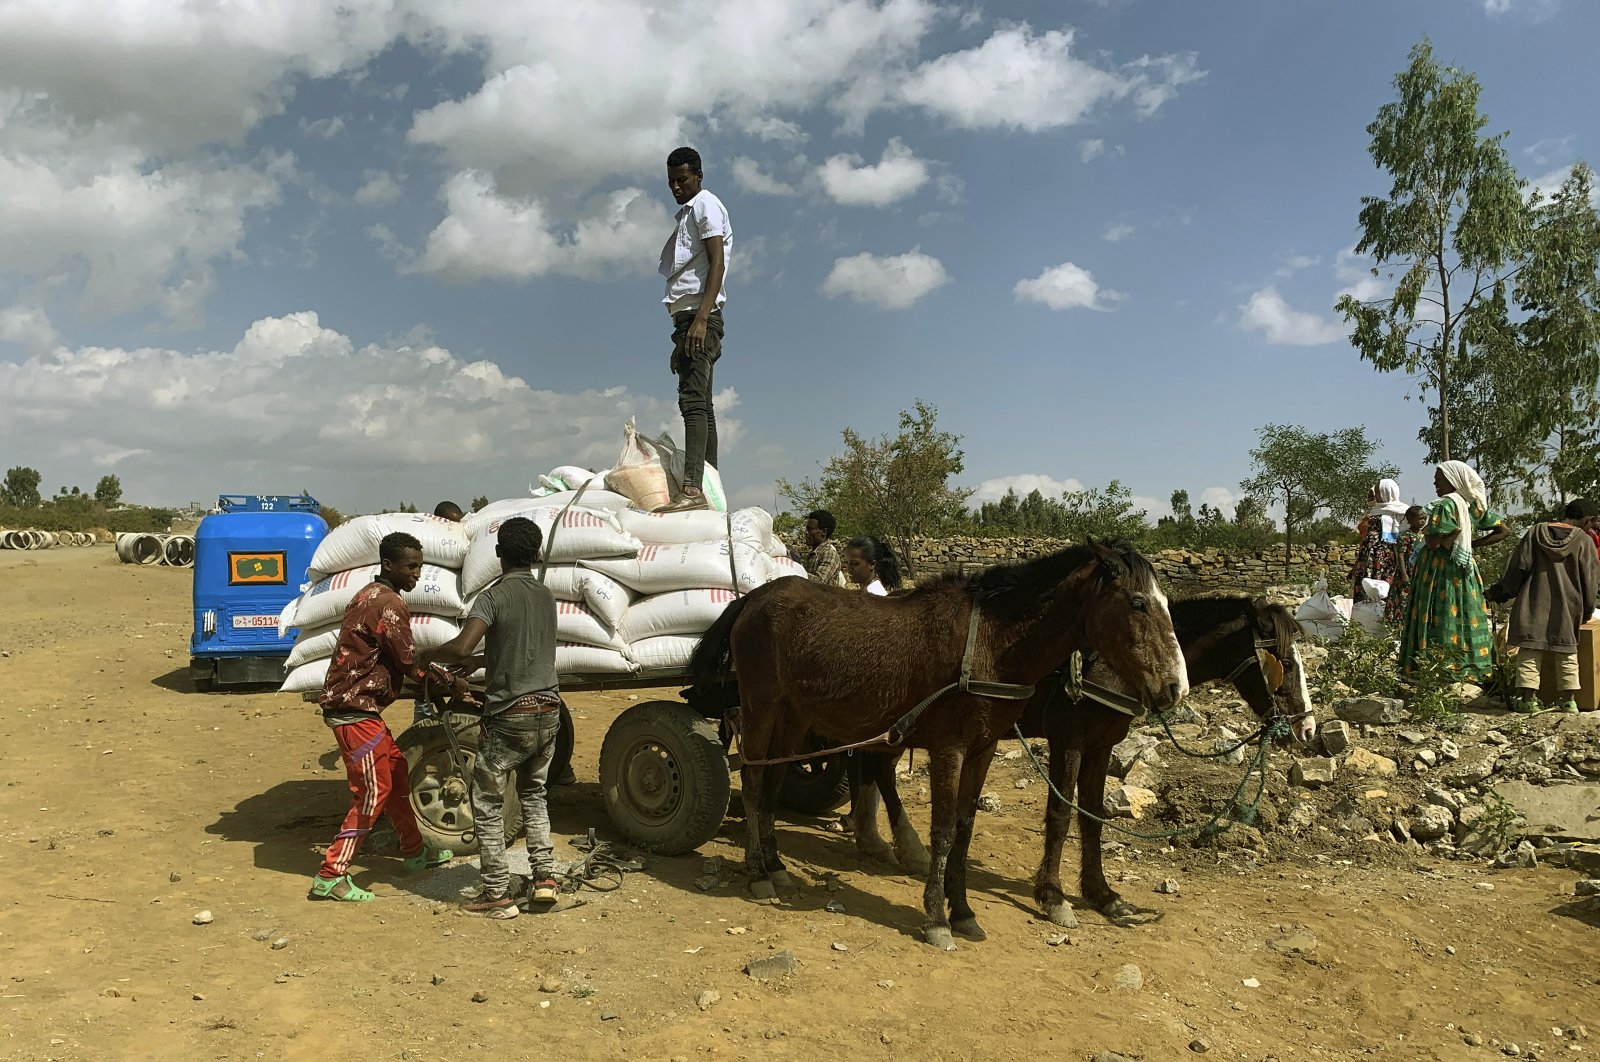 People affected by the conflict in Tigray load food aid provided by humanitarian agencies onto a donkey cart to be transported to their home, outside Mekele, Ethiopia, Jan. 12, 2021. (AP Photo)